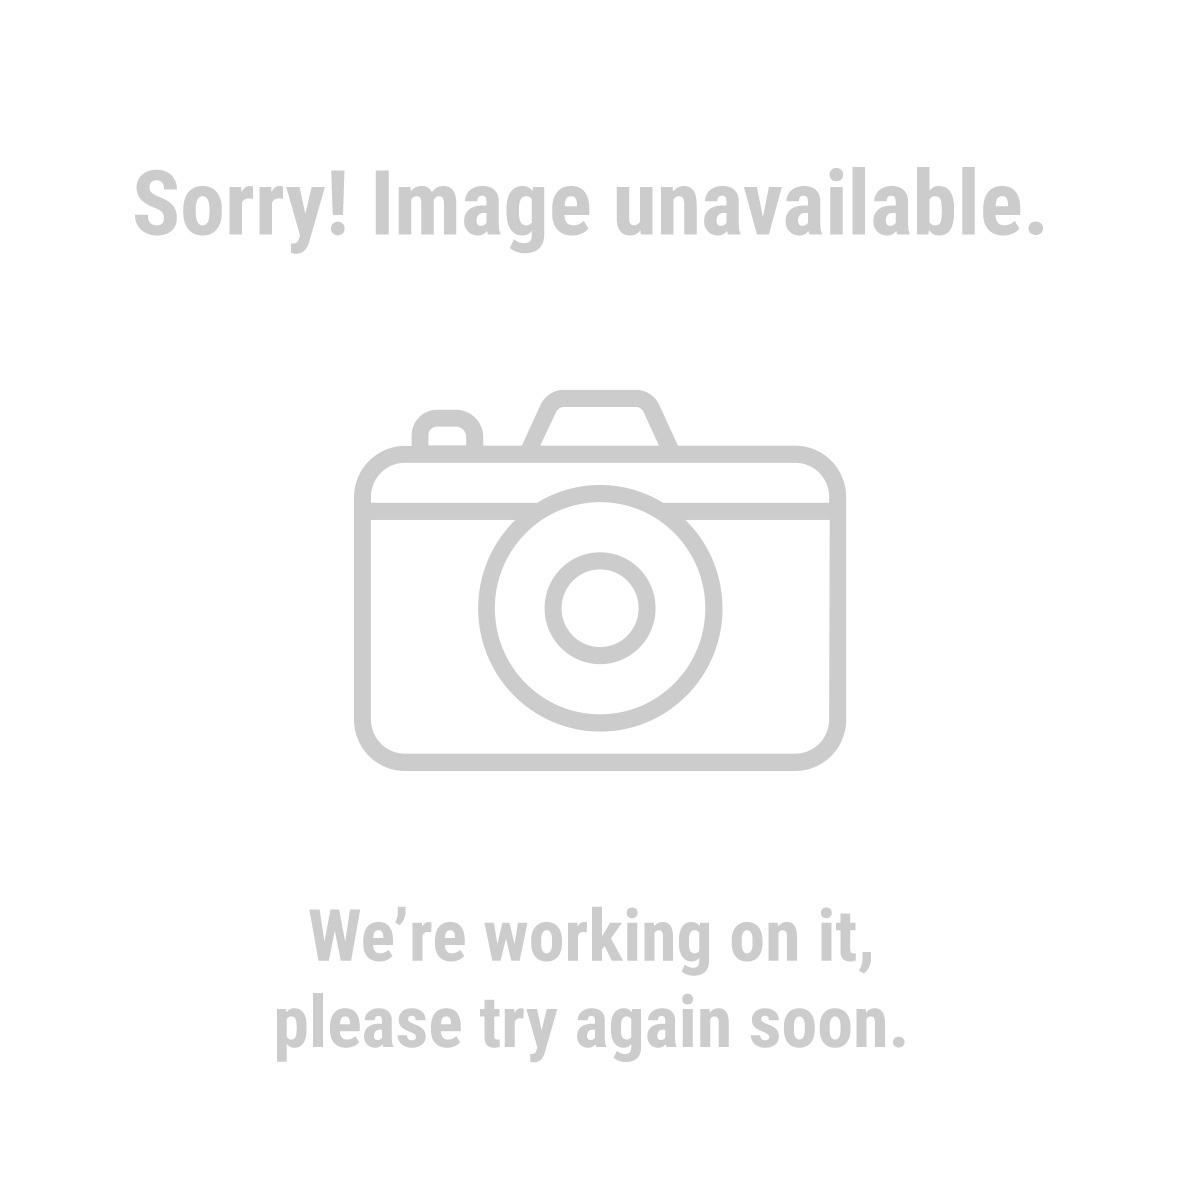 milwaukee battery charger diagram, craftsman battery charger diagram, basic battery charger diagram, car battery charger diagram, schumacher battery charger diagram, eagle battery charger diagram, on wiring diagram for cen tech battery charger